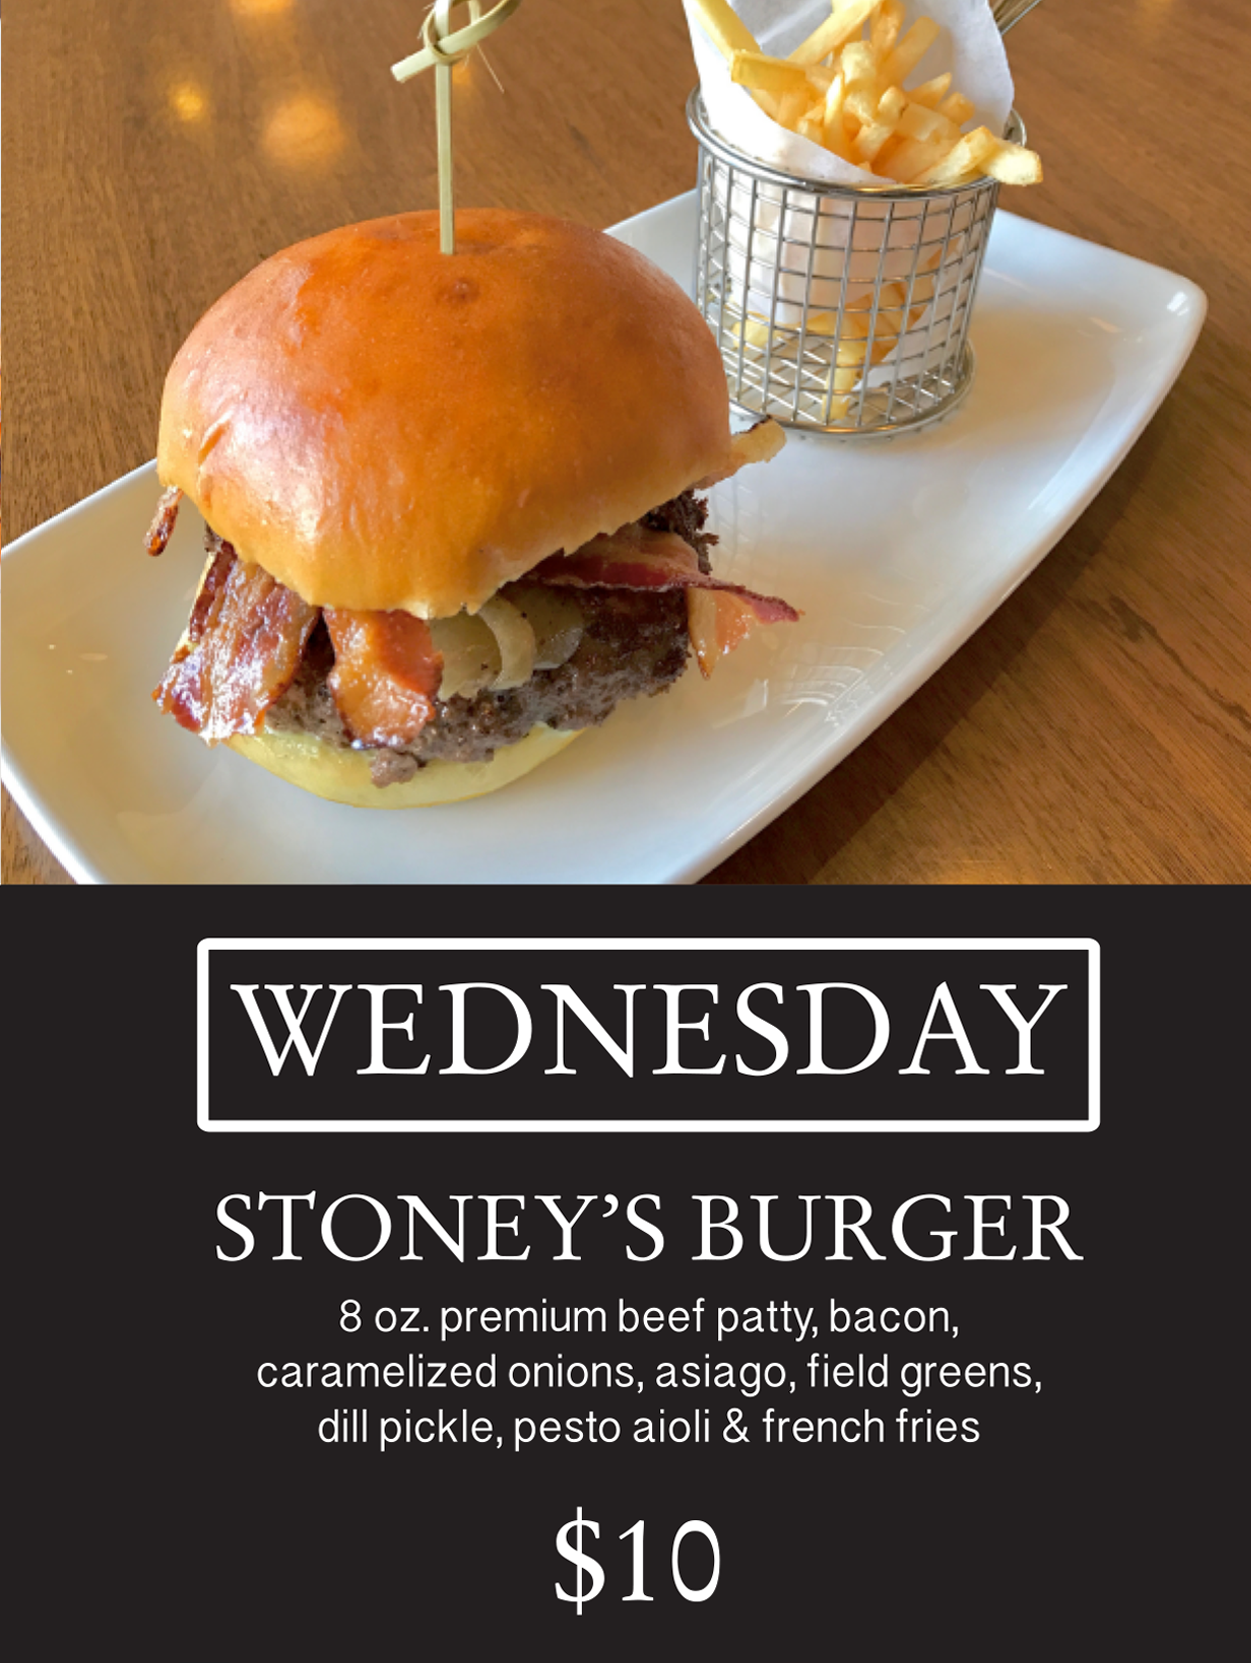 Promotional image for Wednesday $10 Stoney's Burger special